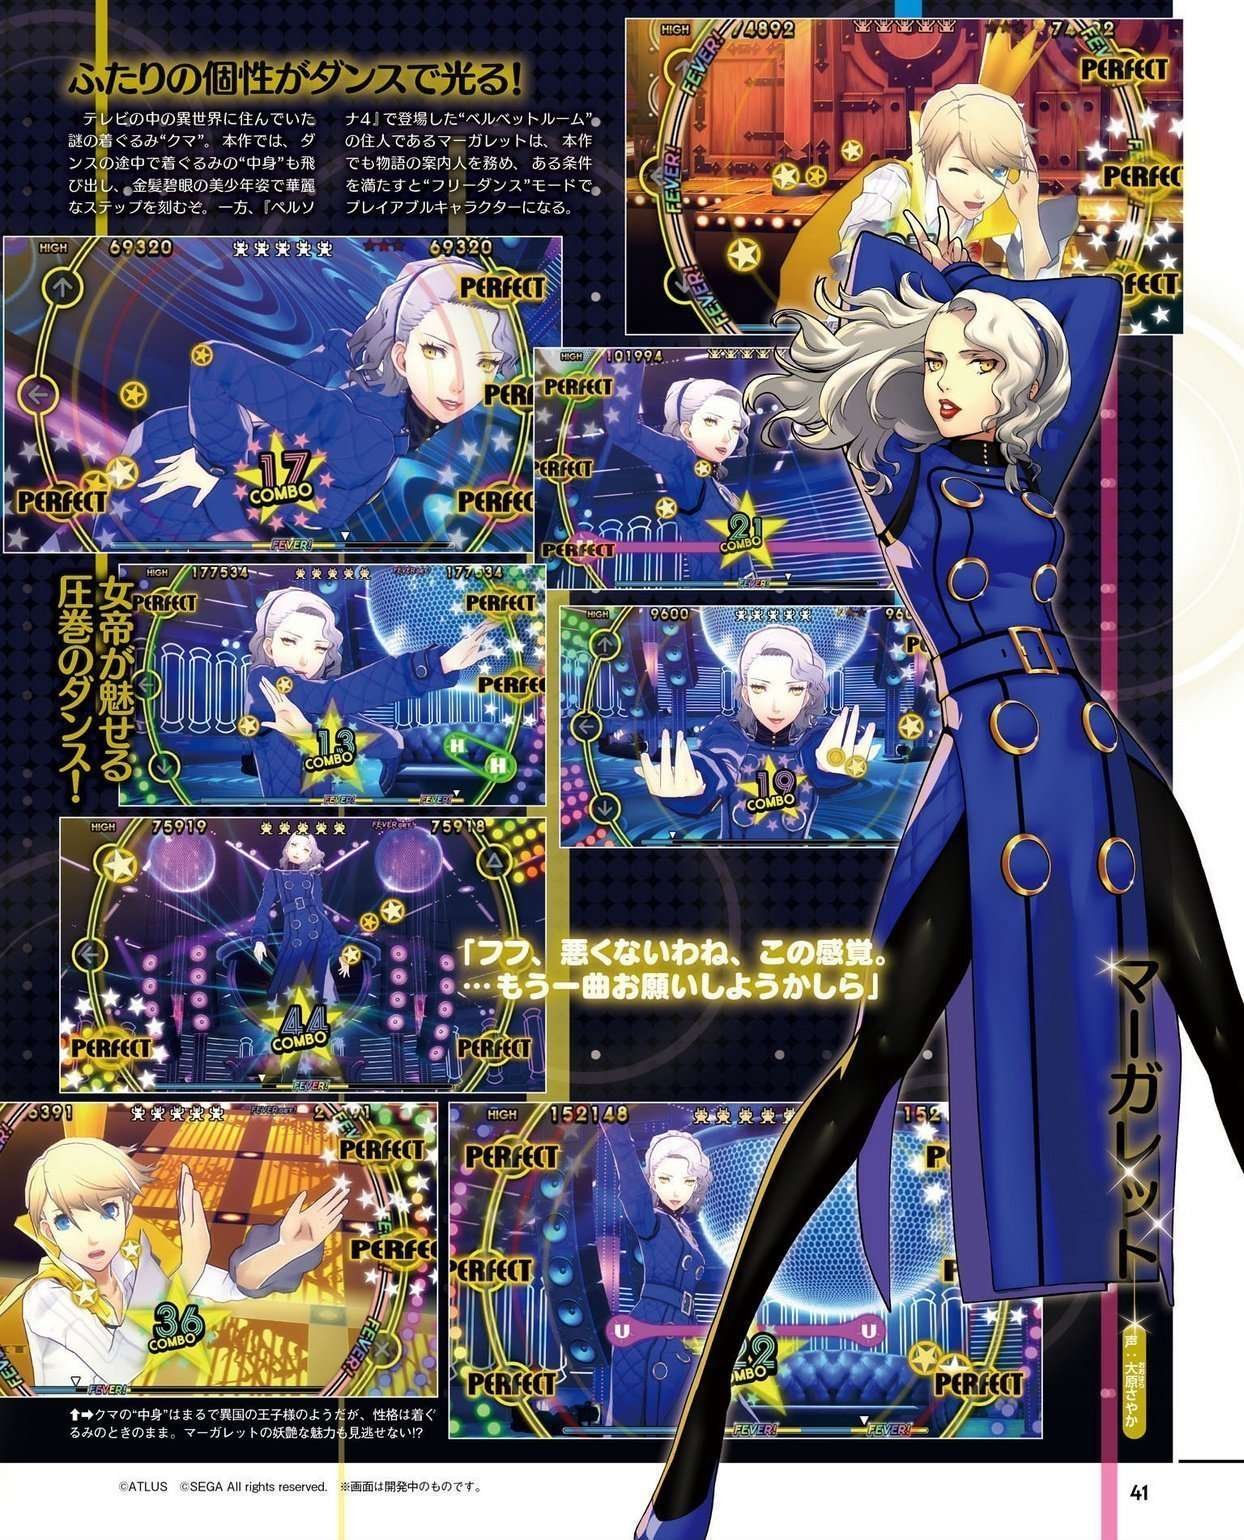 Margaret in Persona 4: Dancing All Night from Famitsu scans.